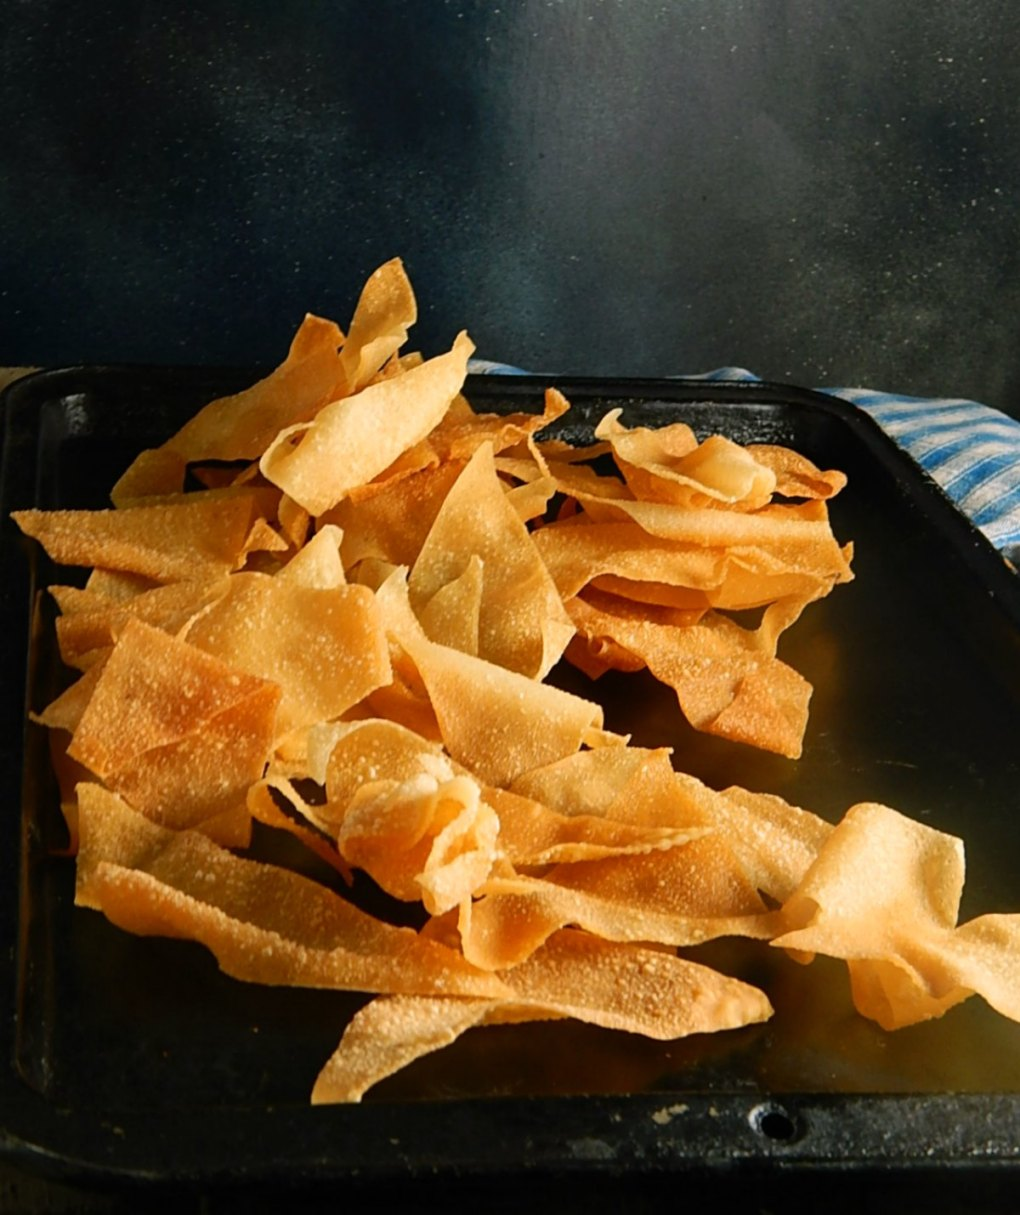 Wonton Chips Baked or Fried